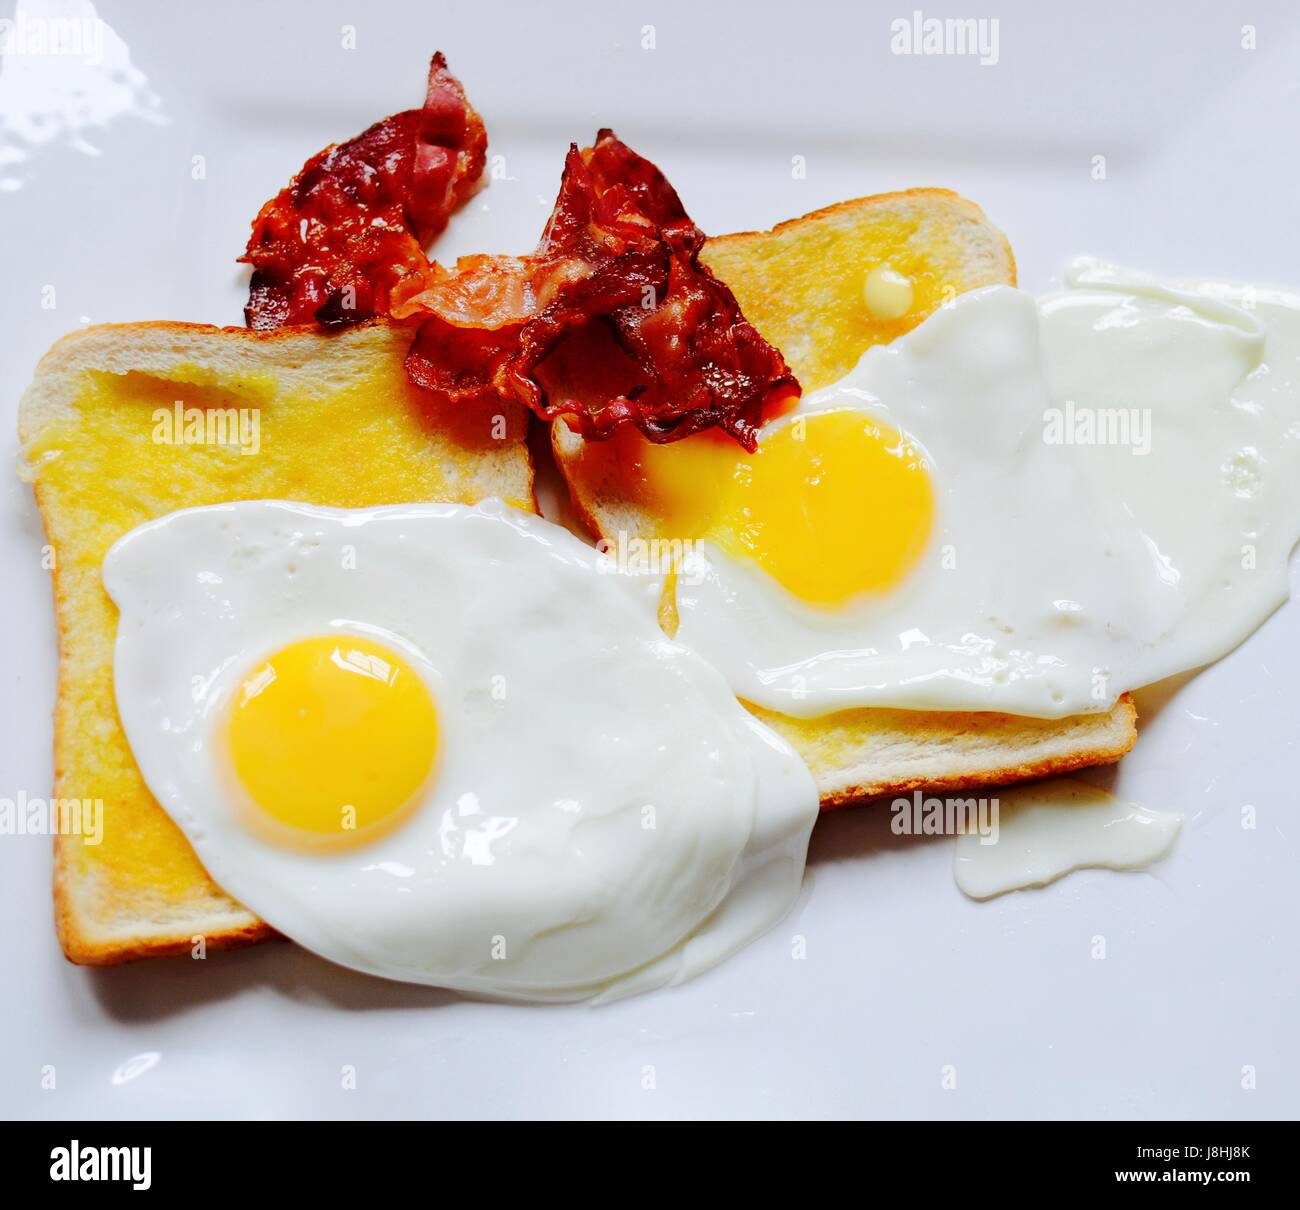 Bacon and fried eggs on white toast - Stock Image